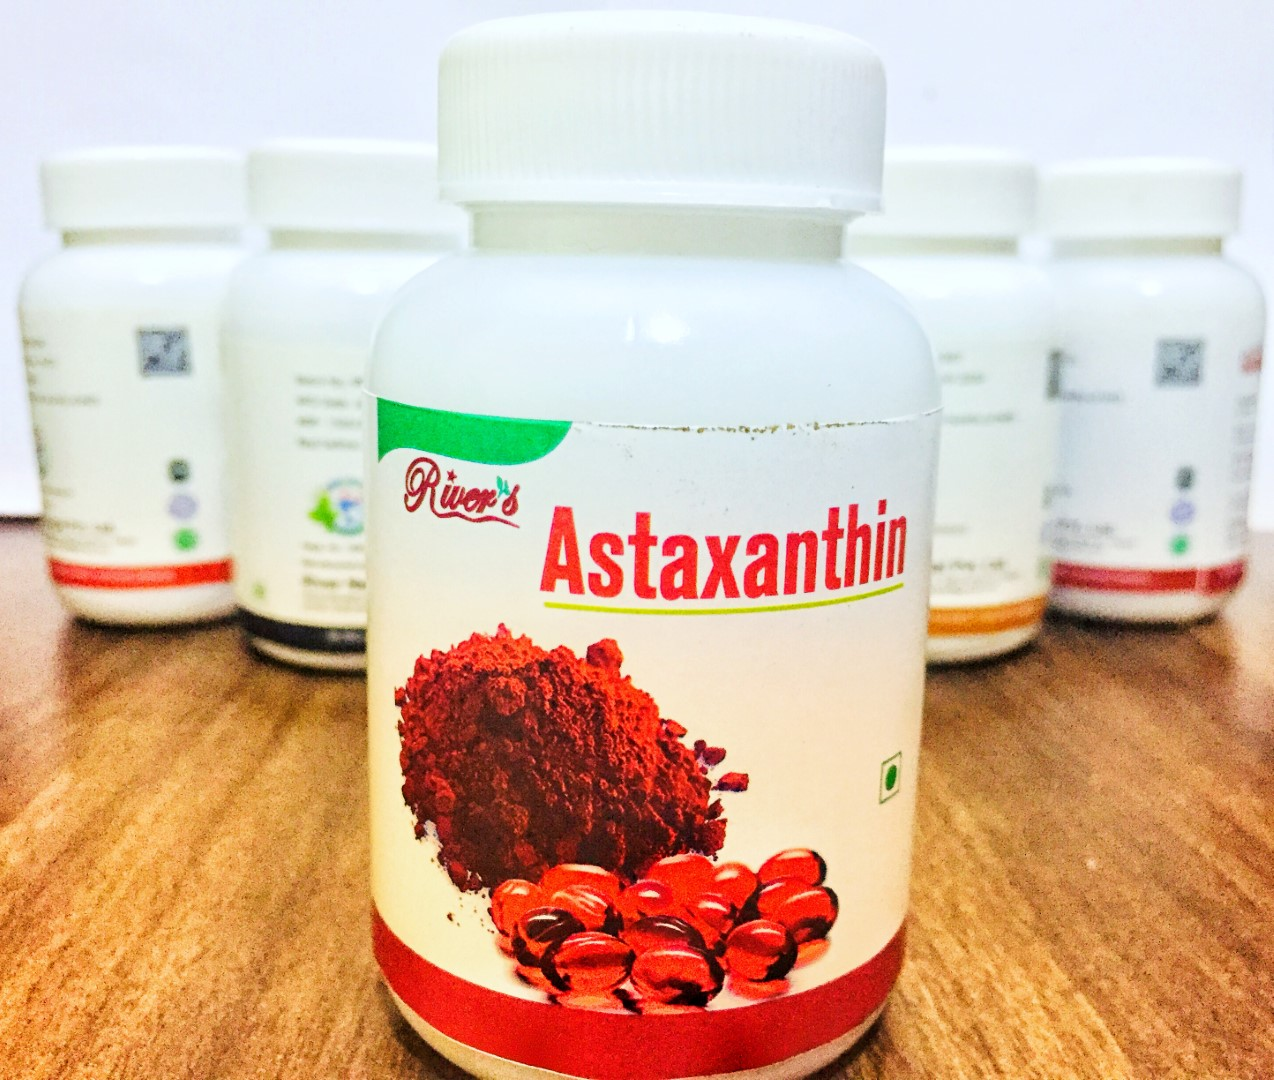 The River's Astaxanthin Food Supplement, Weight Management, Detoxification, Anti-Oxidant, Healthy Heart, Beneficial Herbal Food Supplement / By Shophill